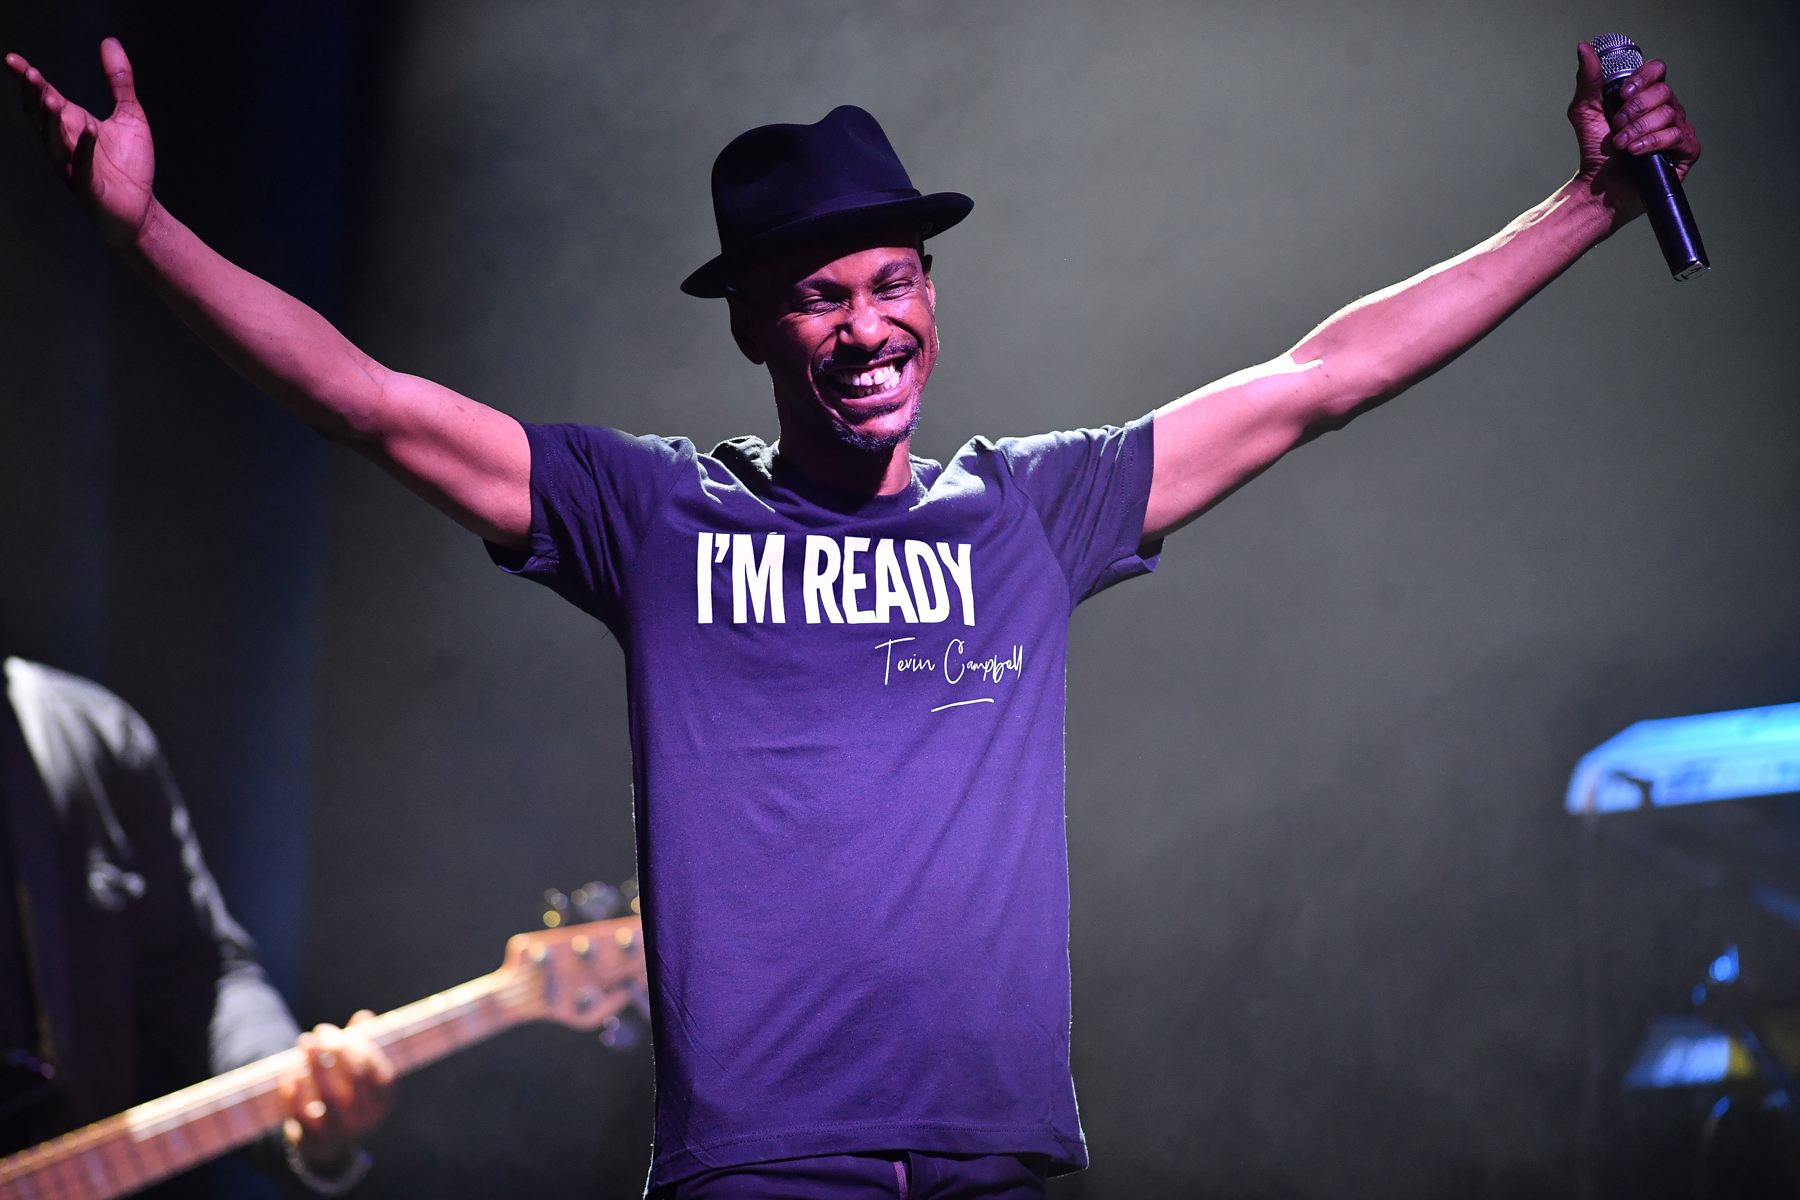 ATLANTA, GA - NOVEMBER 24: Tevin Campbell performs at R&B Replay Concert Series at Center Stage on November 24, 2019 in Atlanta, Georgia.(Photo by Prince Williams/Wireimage)